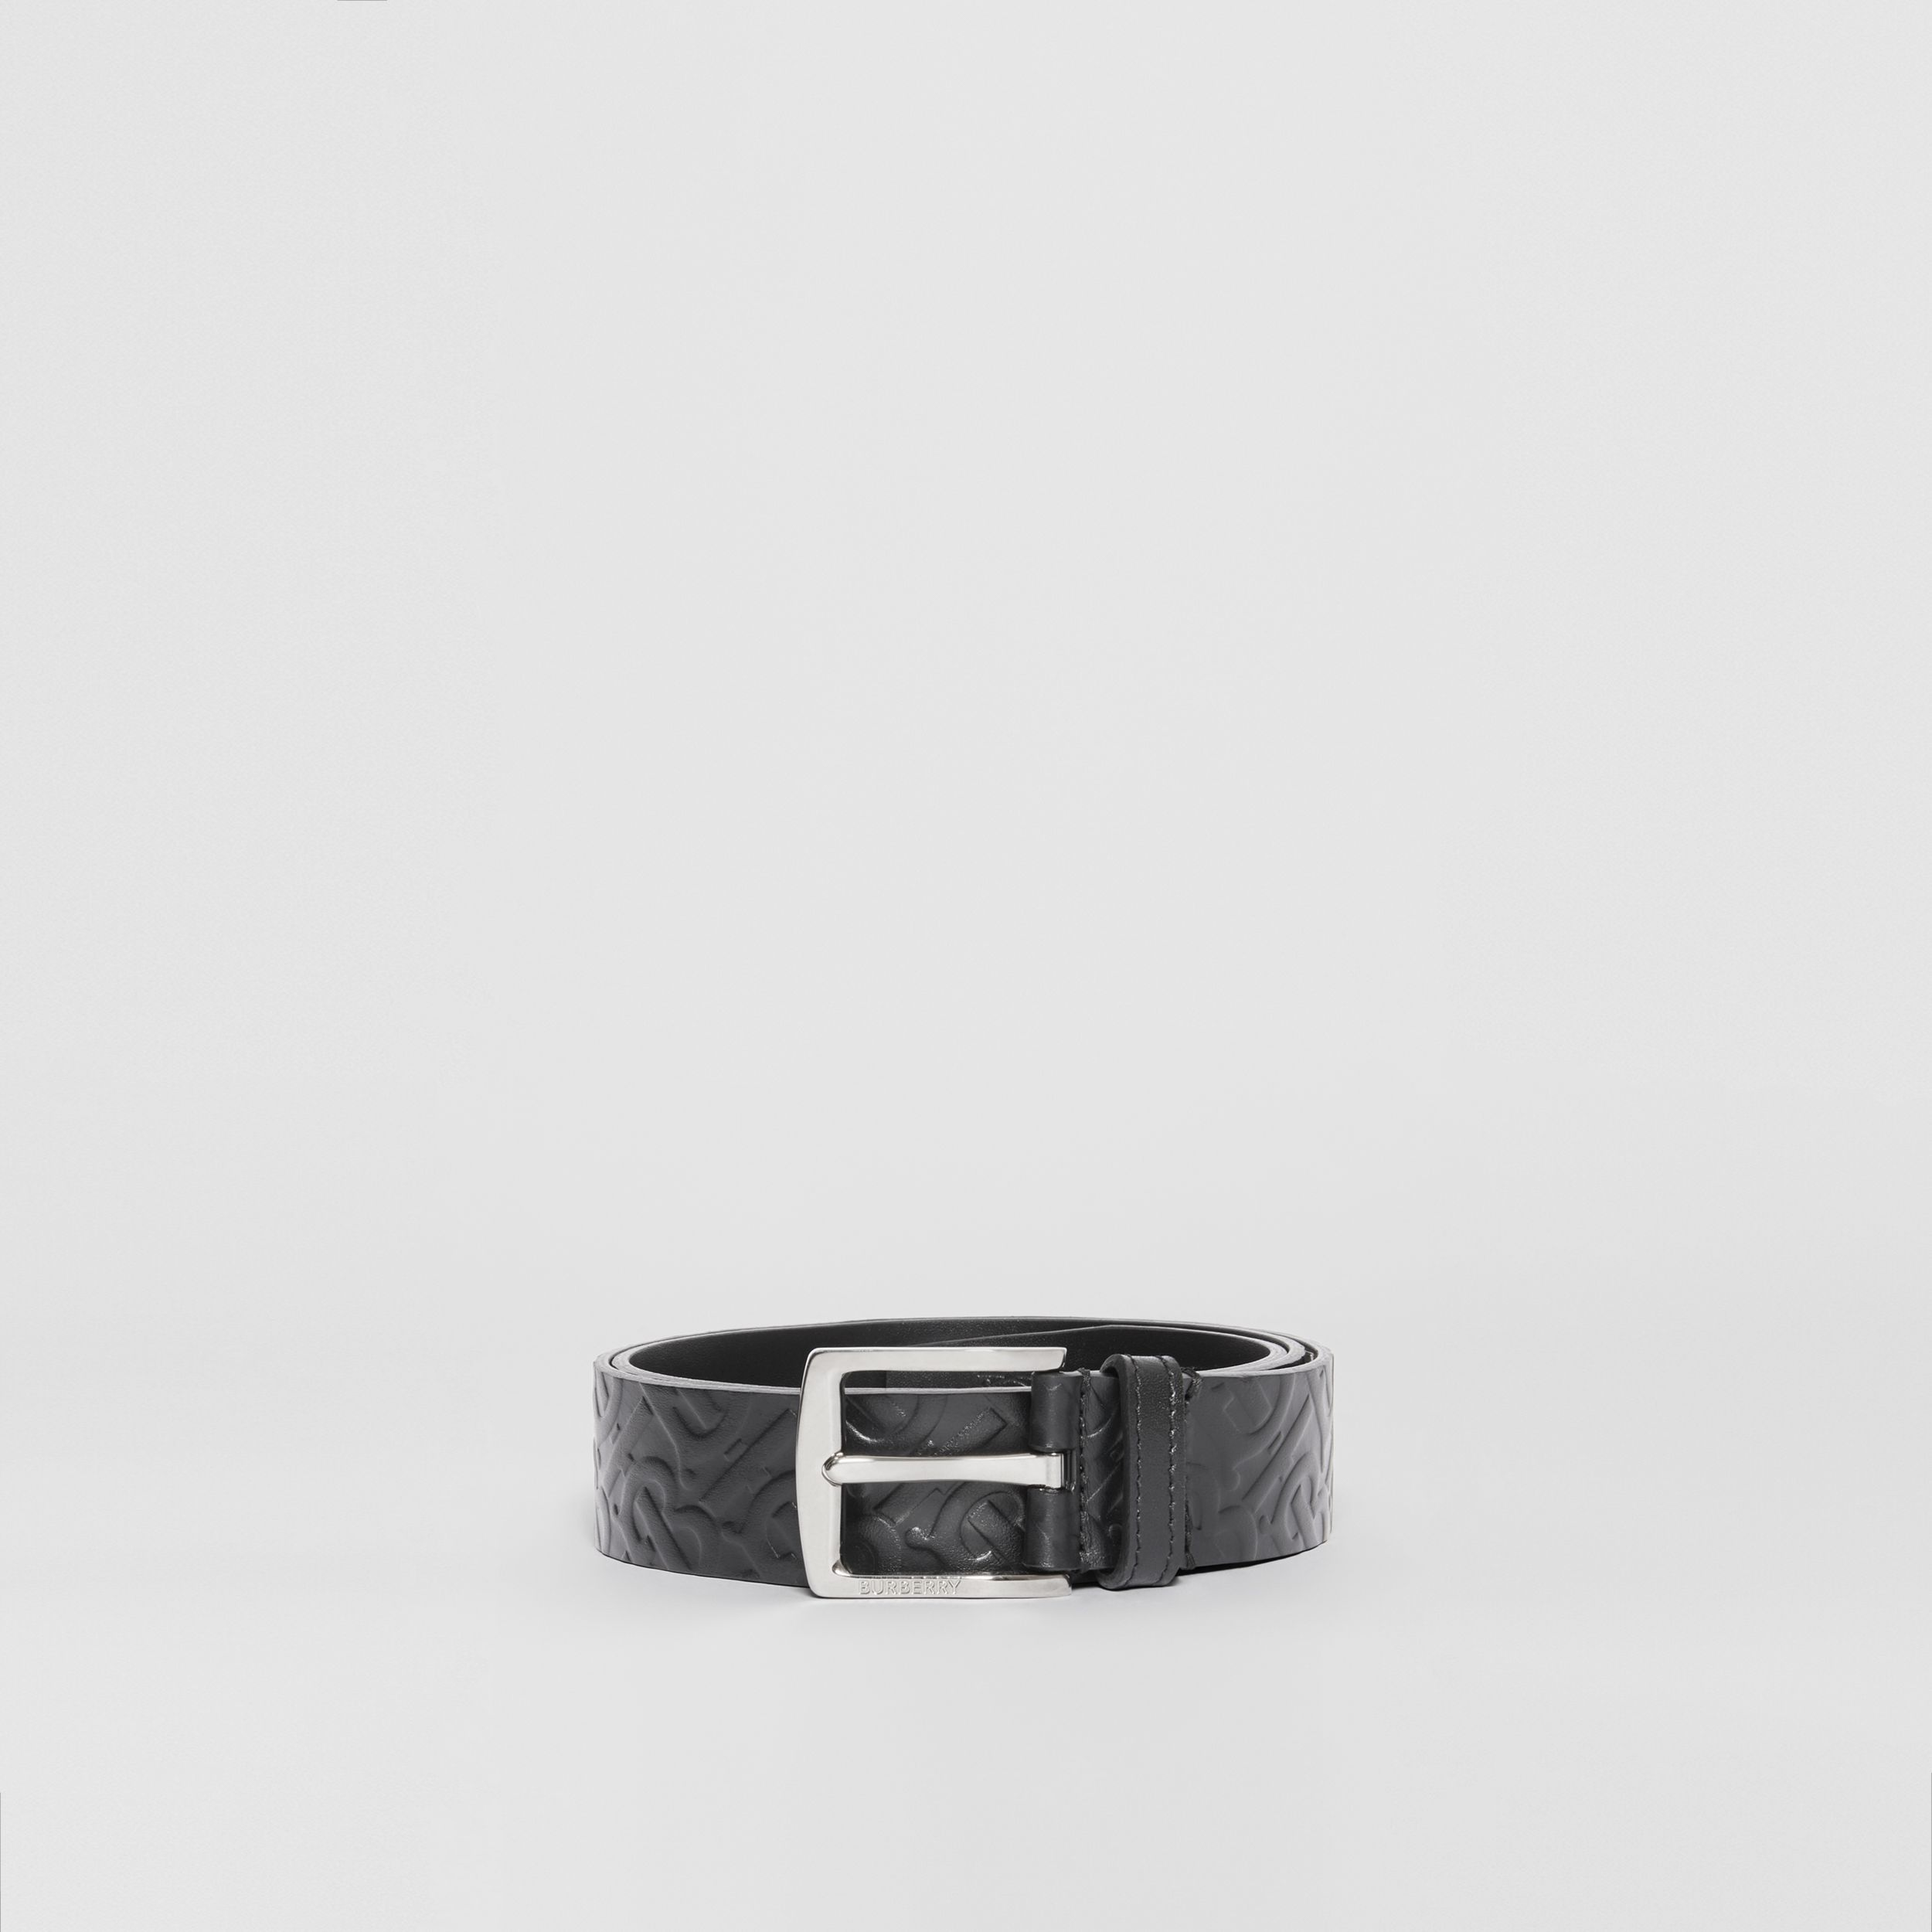 Monogram Leather Belt in Black - Men | Burberry - 4